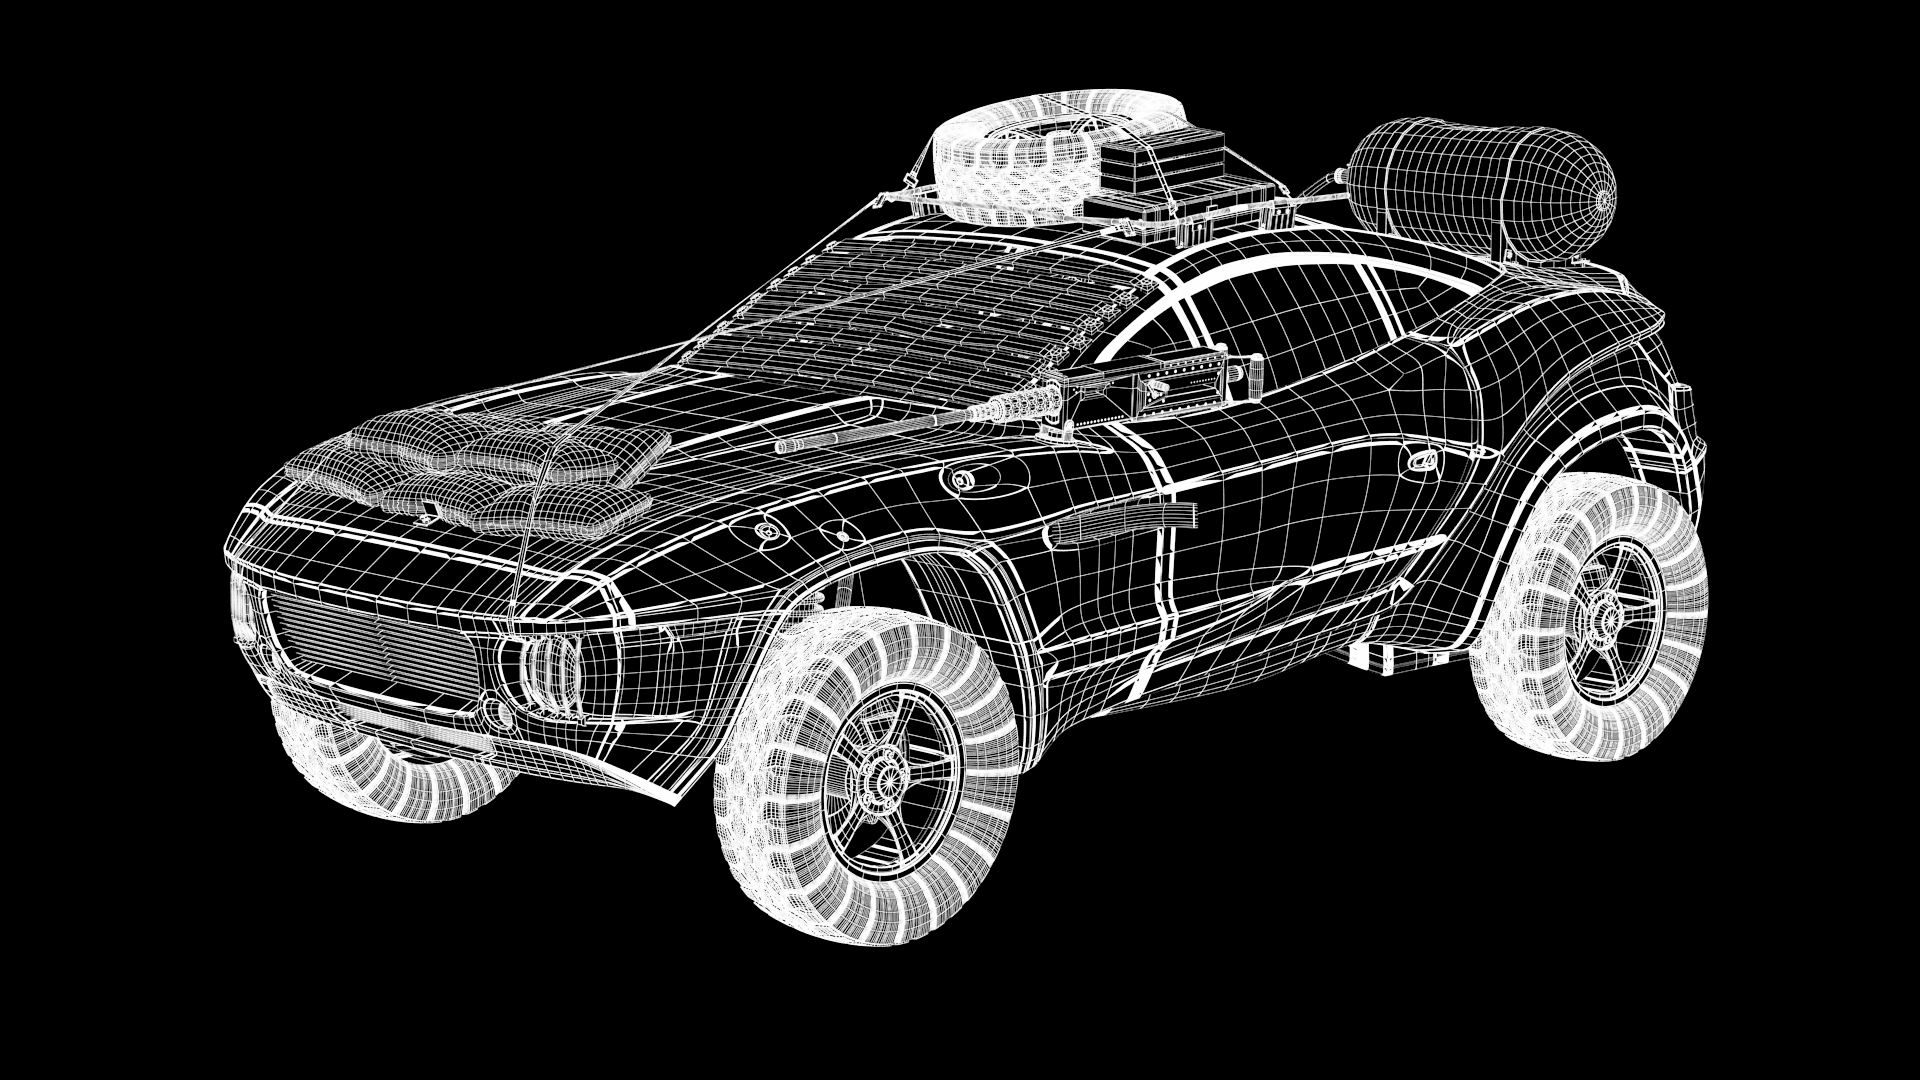 Madmax 3D model - Wireframe - MadMax